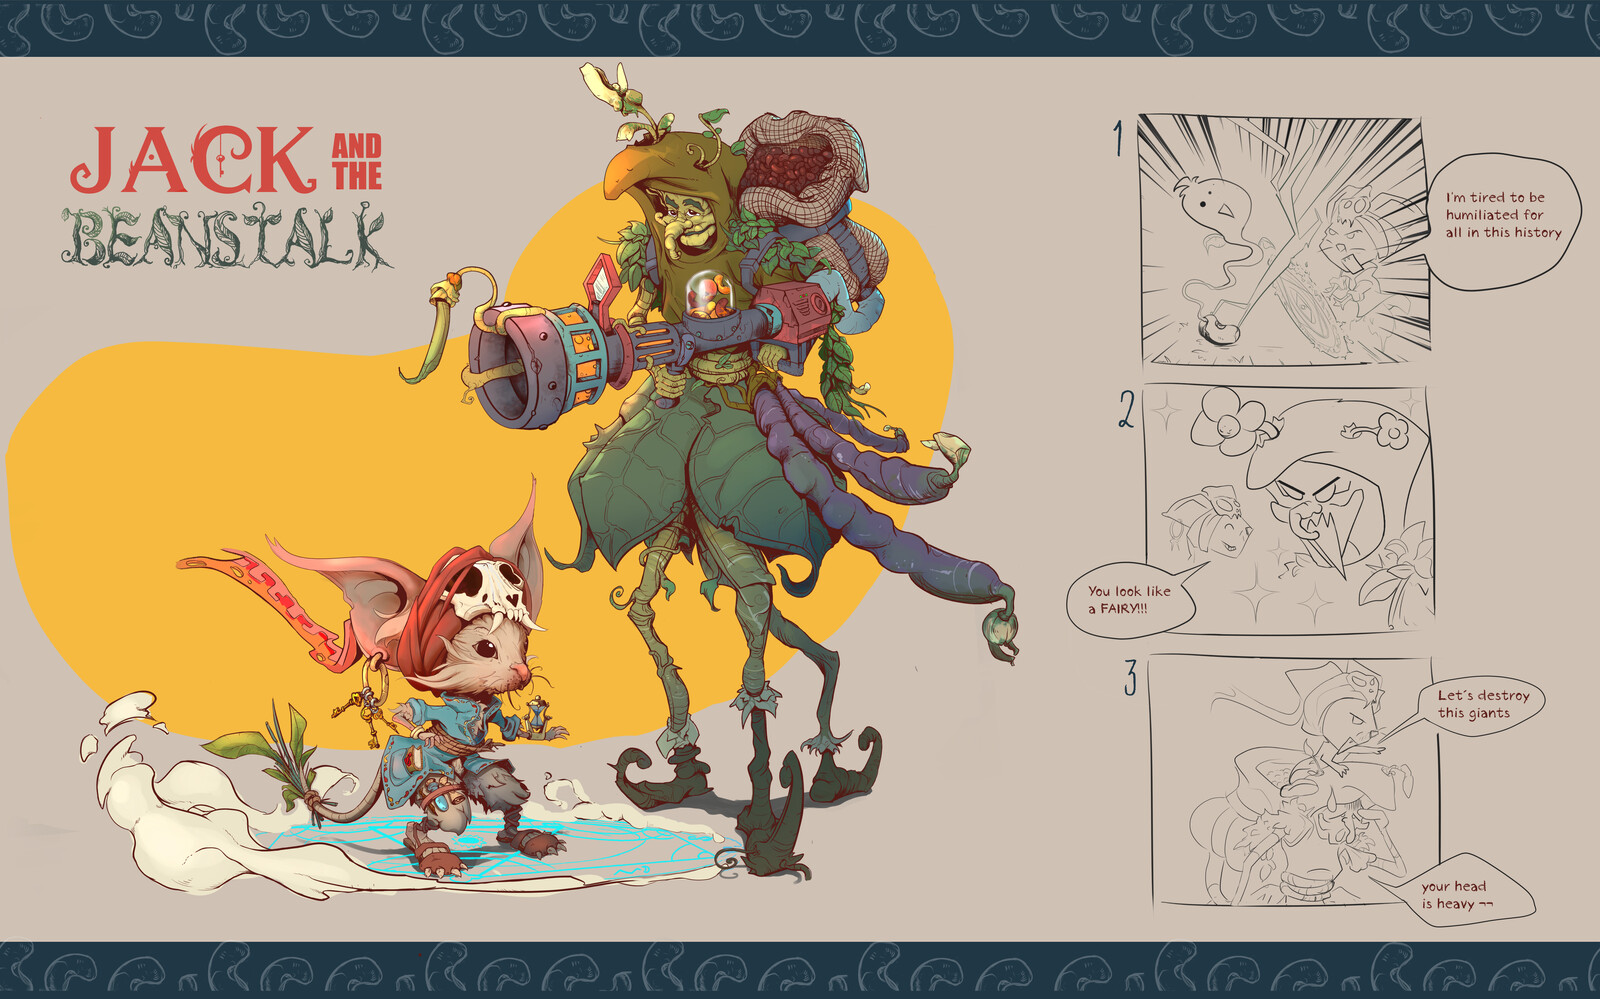 Jack and the Beanstalk concept